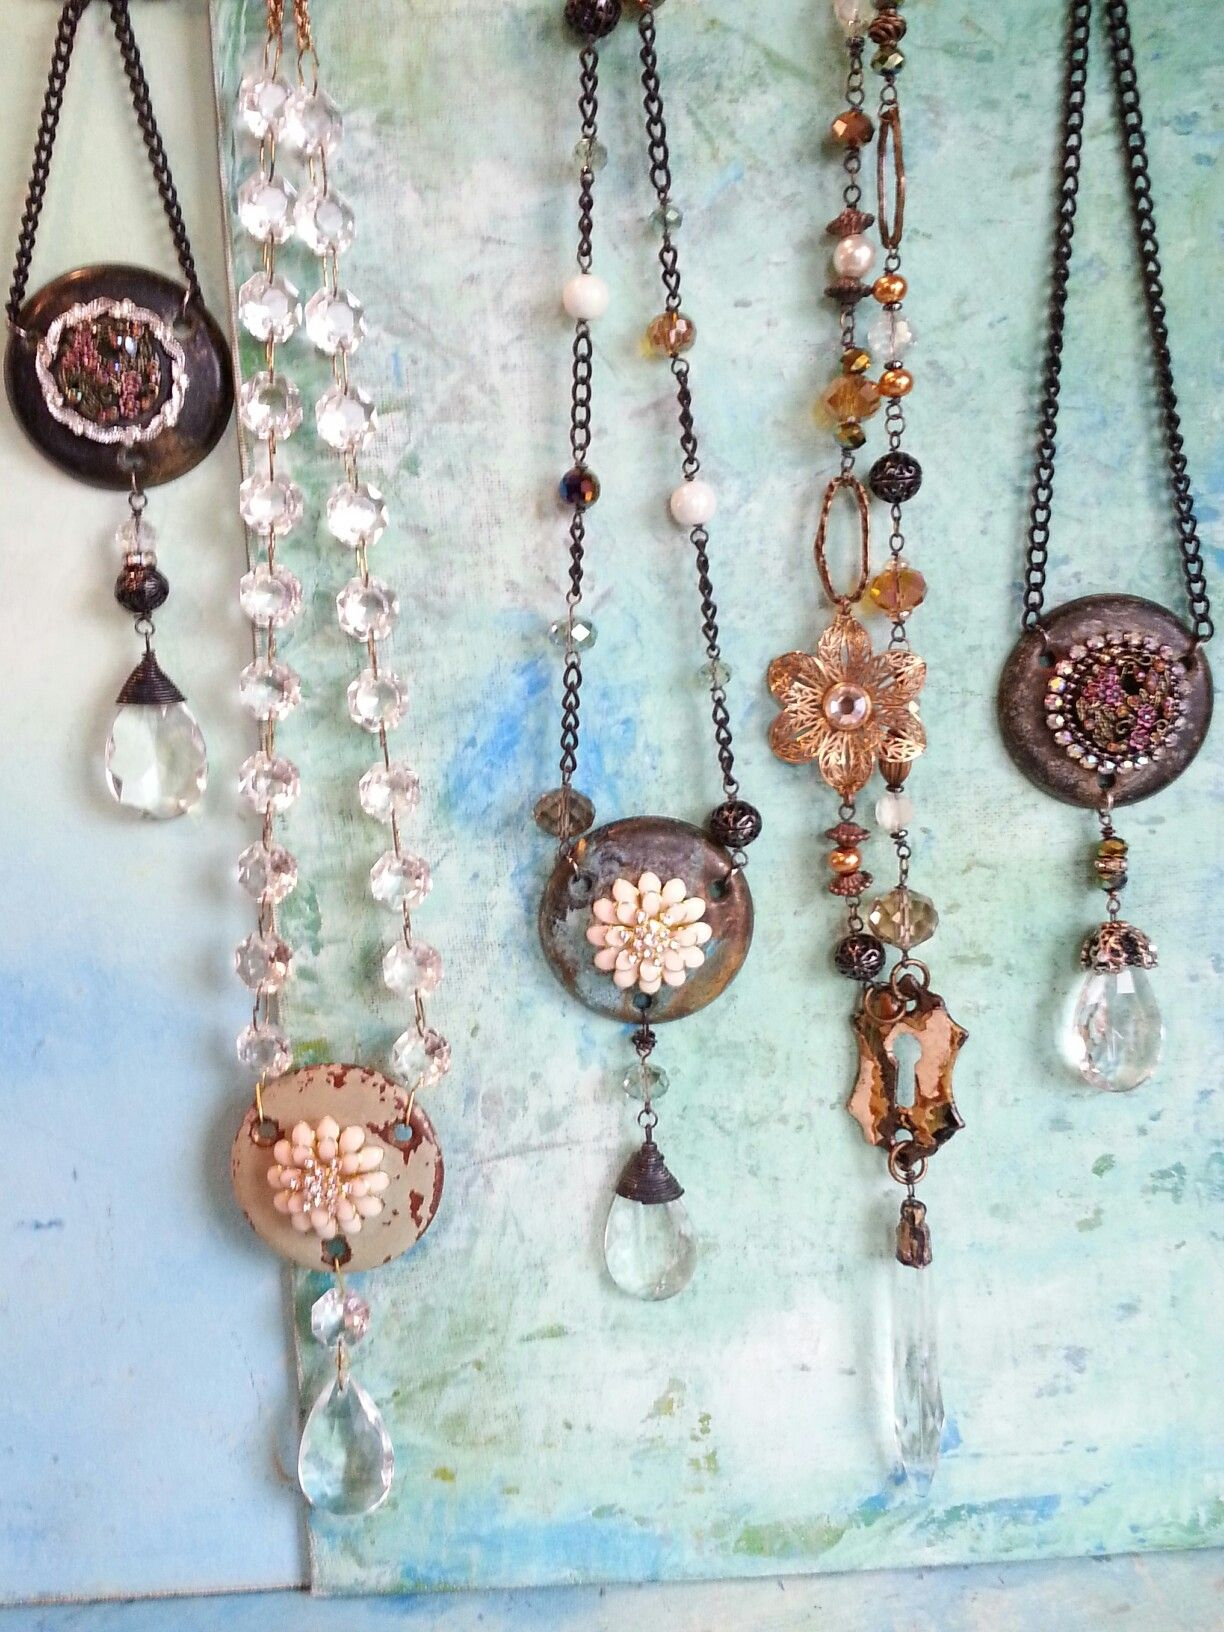 Vintage Assemblage Necklaces #CloverMoonDesigns